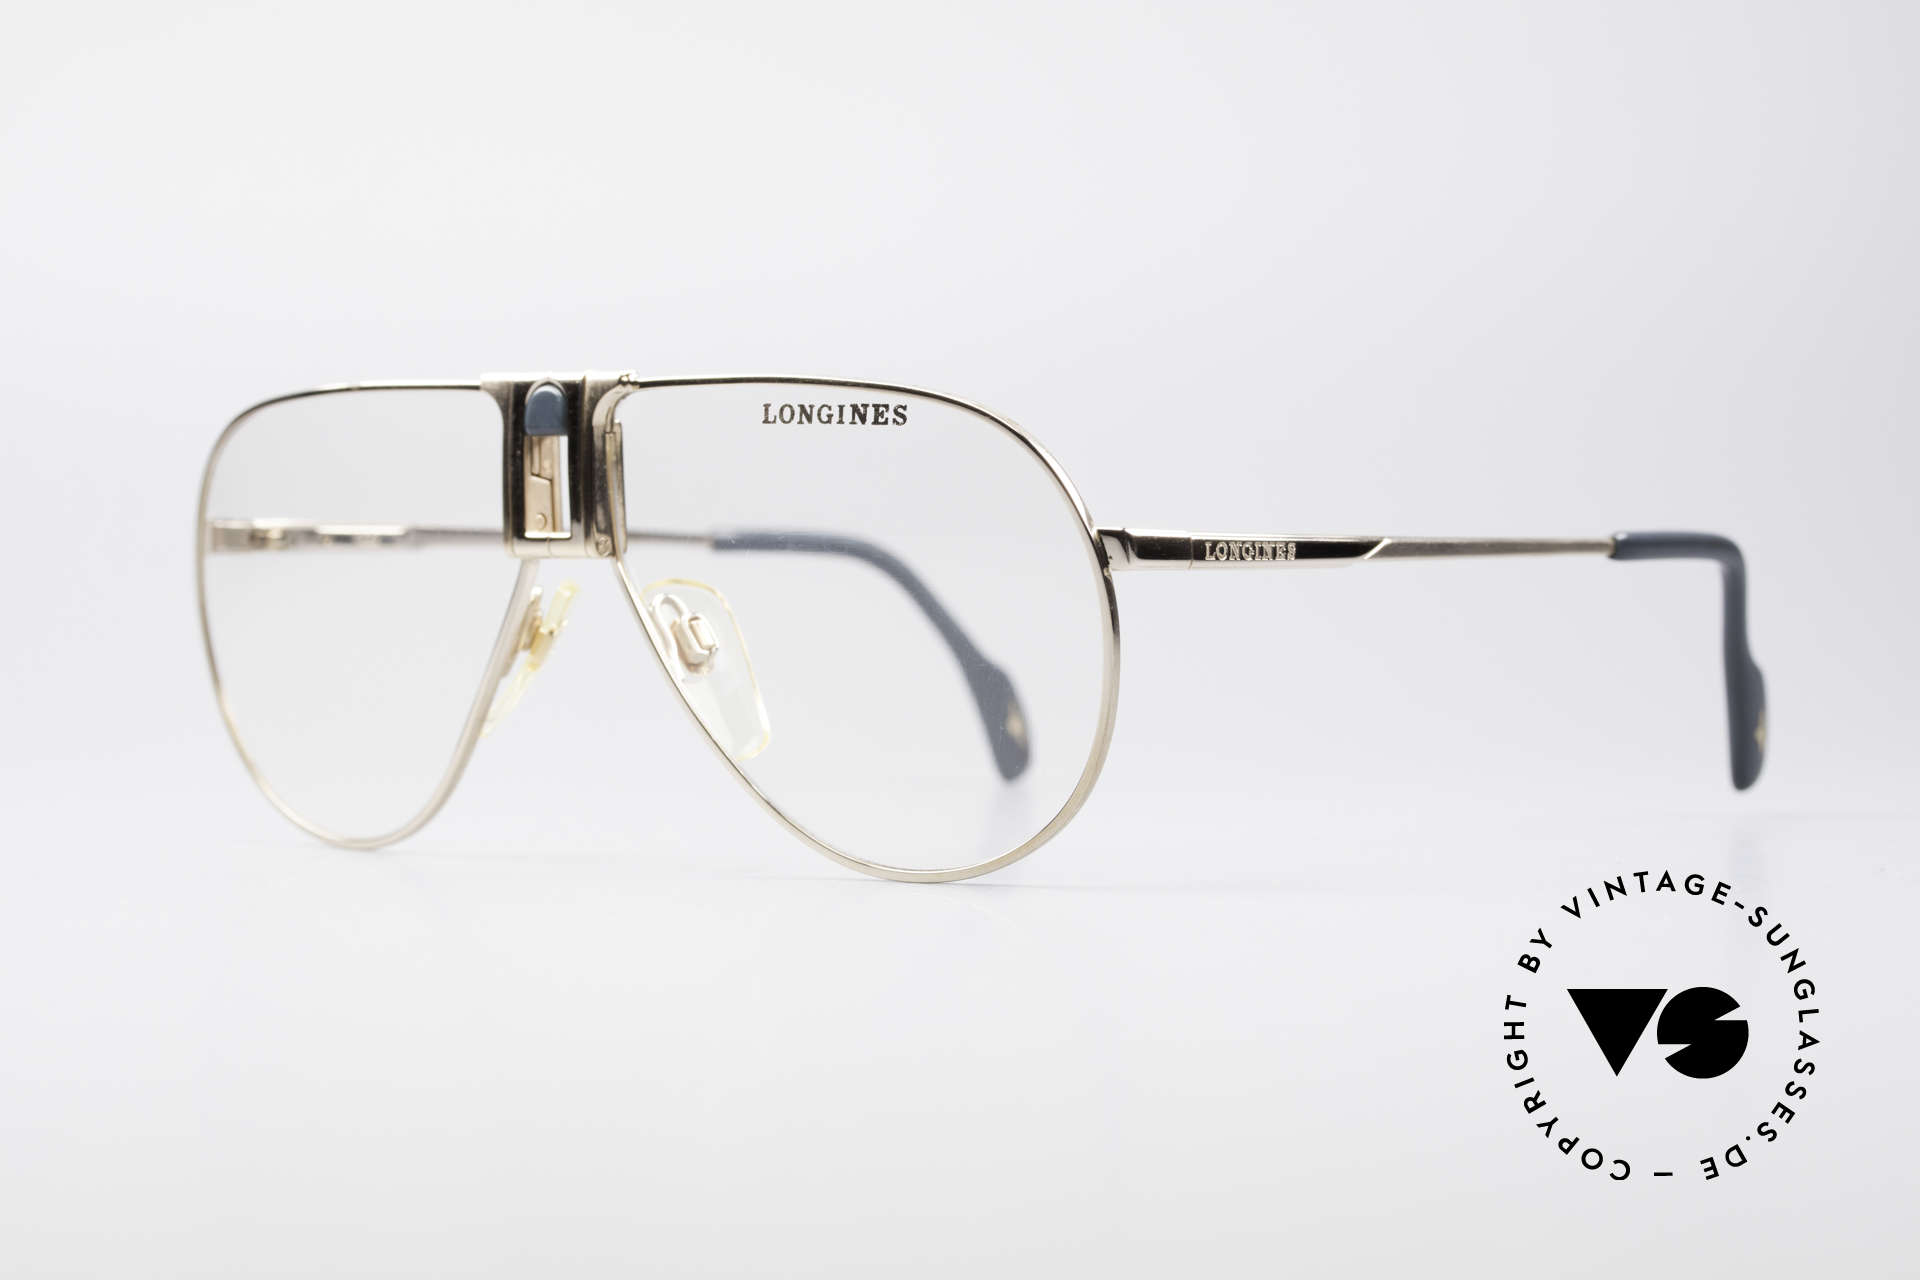 Longines 0154 1980's Aviator Eyeglasses, classic aviator design & with timeless coloring (gold), Made for Men